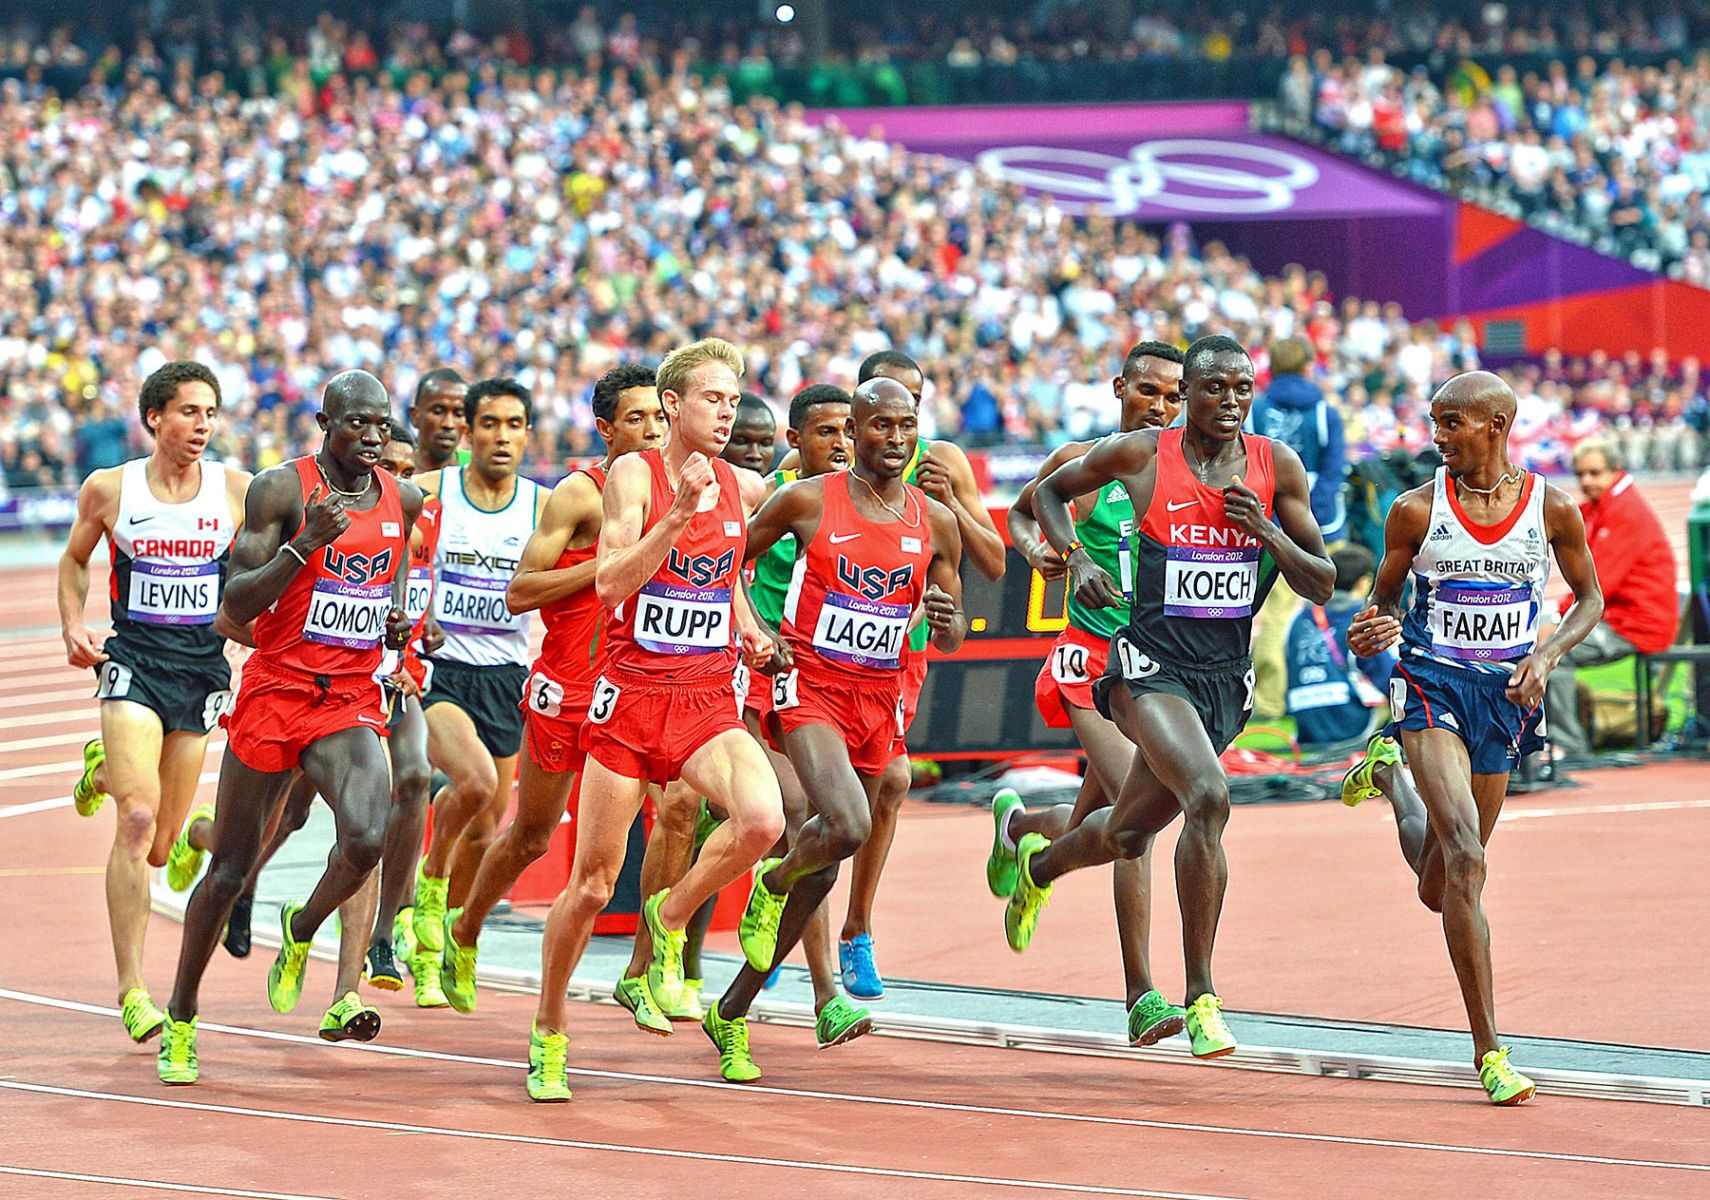 1london2012_mo_farah_galen_rupp_5000meters_track_and_field_image_jeff_cohen_photo_lb.jpg